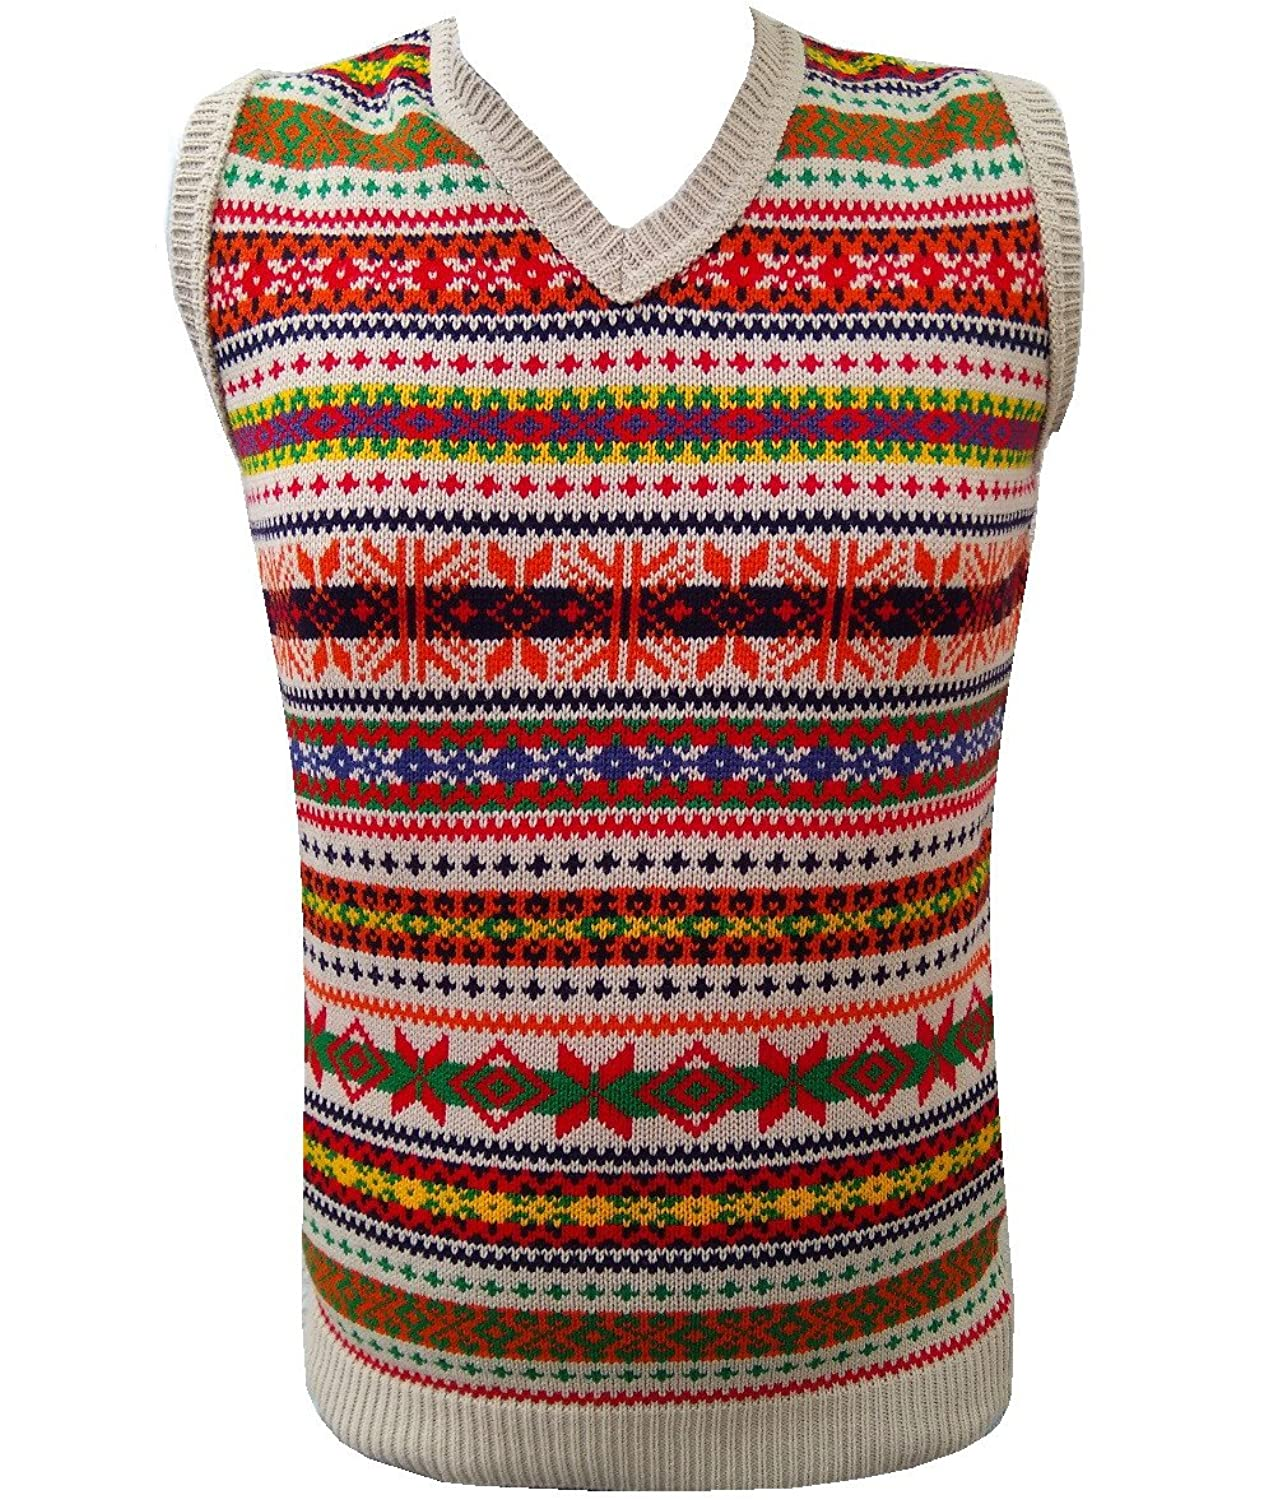 1940s UK and Europe Men's Clothing – WW2, Swing Dance, Goodwin London Knitwear Gallery Retro Vintage Knitwear Tanktop Sleeveless Golf Sweater £19.99 AT vintagedancer.com